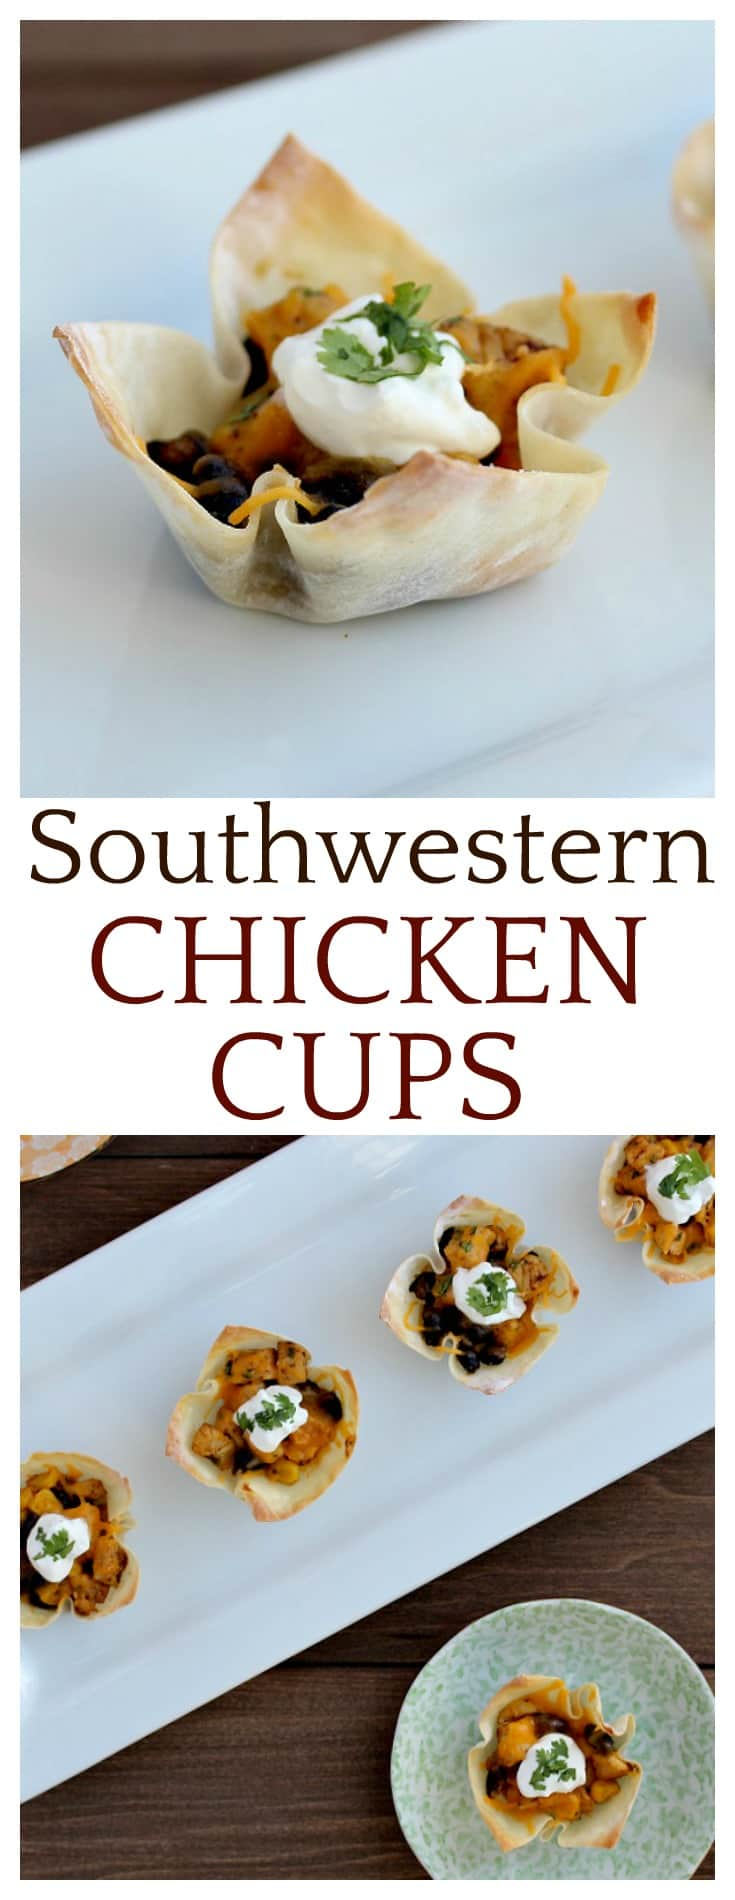 This easy recipe for Southwestern Chicken Cups makes a great appetizer or party food! My family has even eaten them for dinner a time or two!